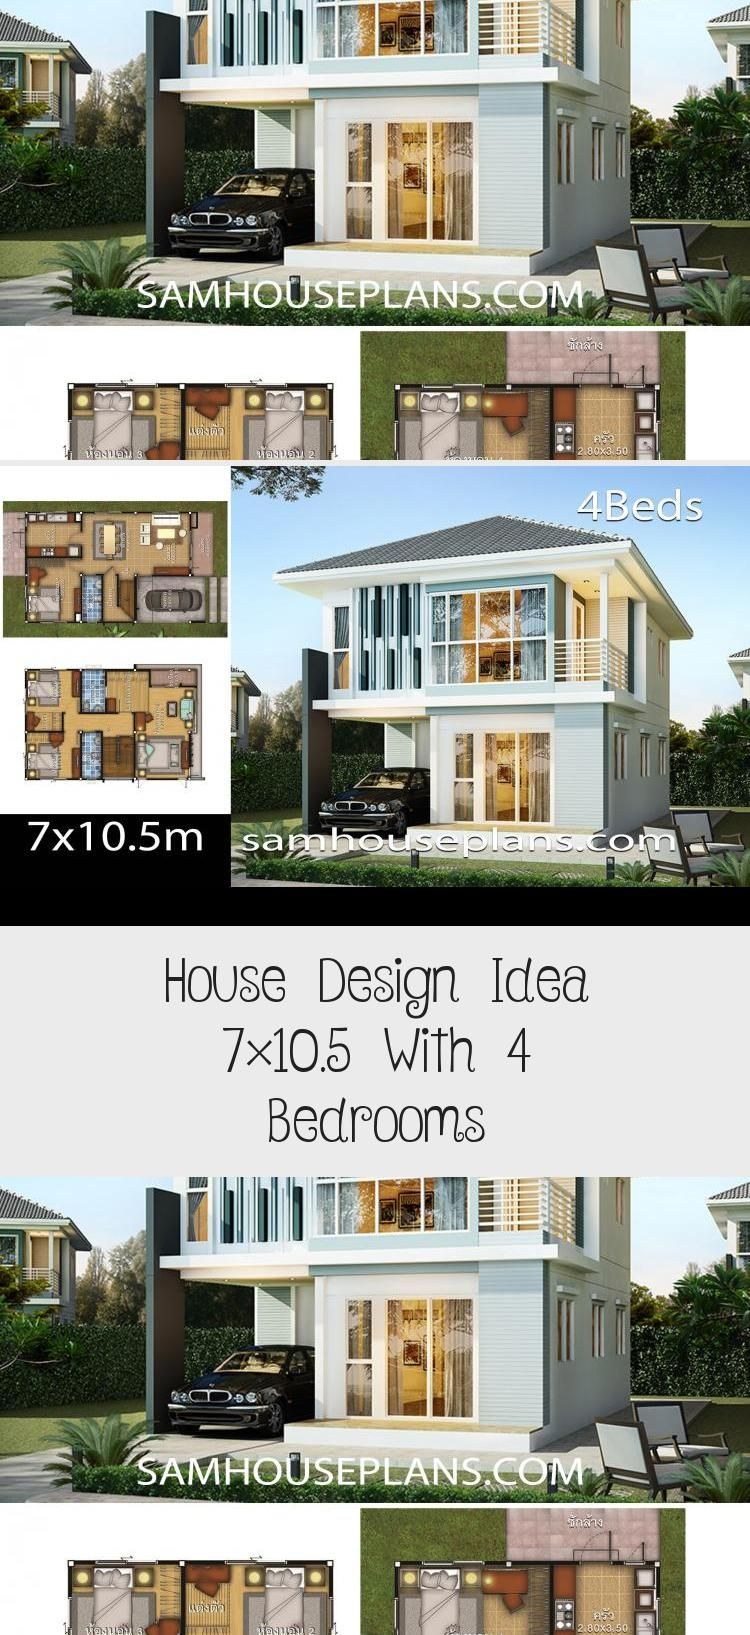 House Design Idea 7x10 5 With 4 Bedrooms Sam House Plans Smallhouseplans500sqft Smallhouseplanscontempo In 2020 Courtyard House Plans House Design Pool House Plans